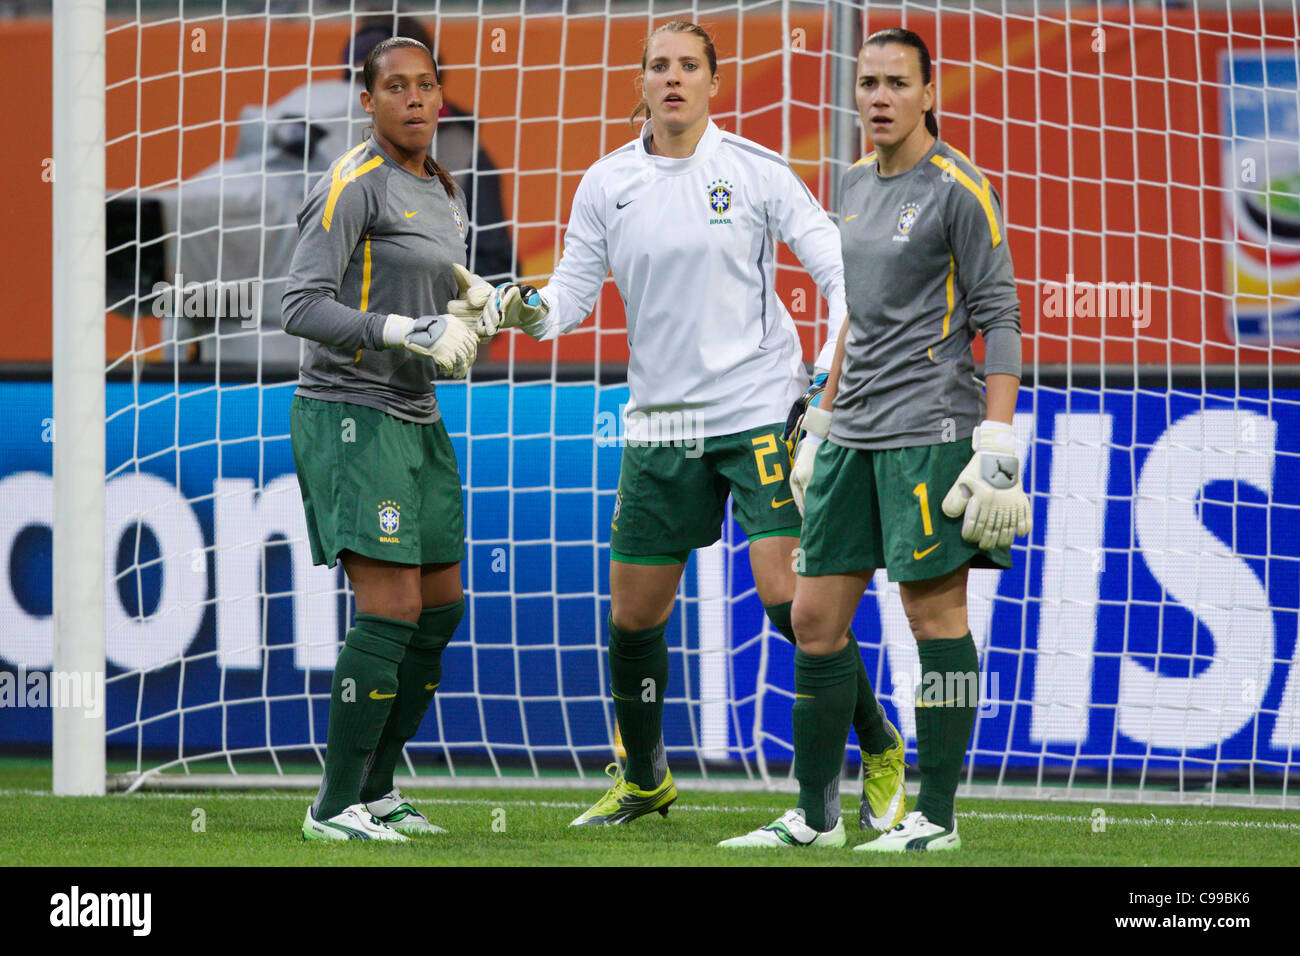 Brazil goalkeepers Barbara, Thais and Andreia (L-R) warm up before a 2011 FIFA Women's World Cup Group D match - Stock Image